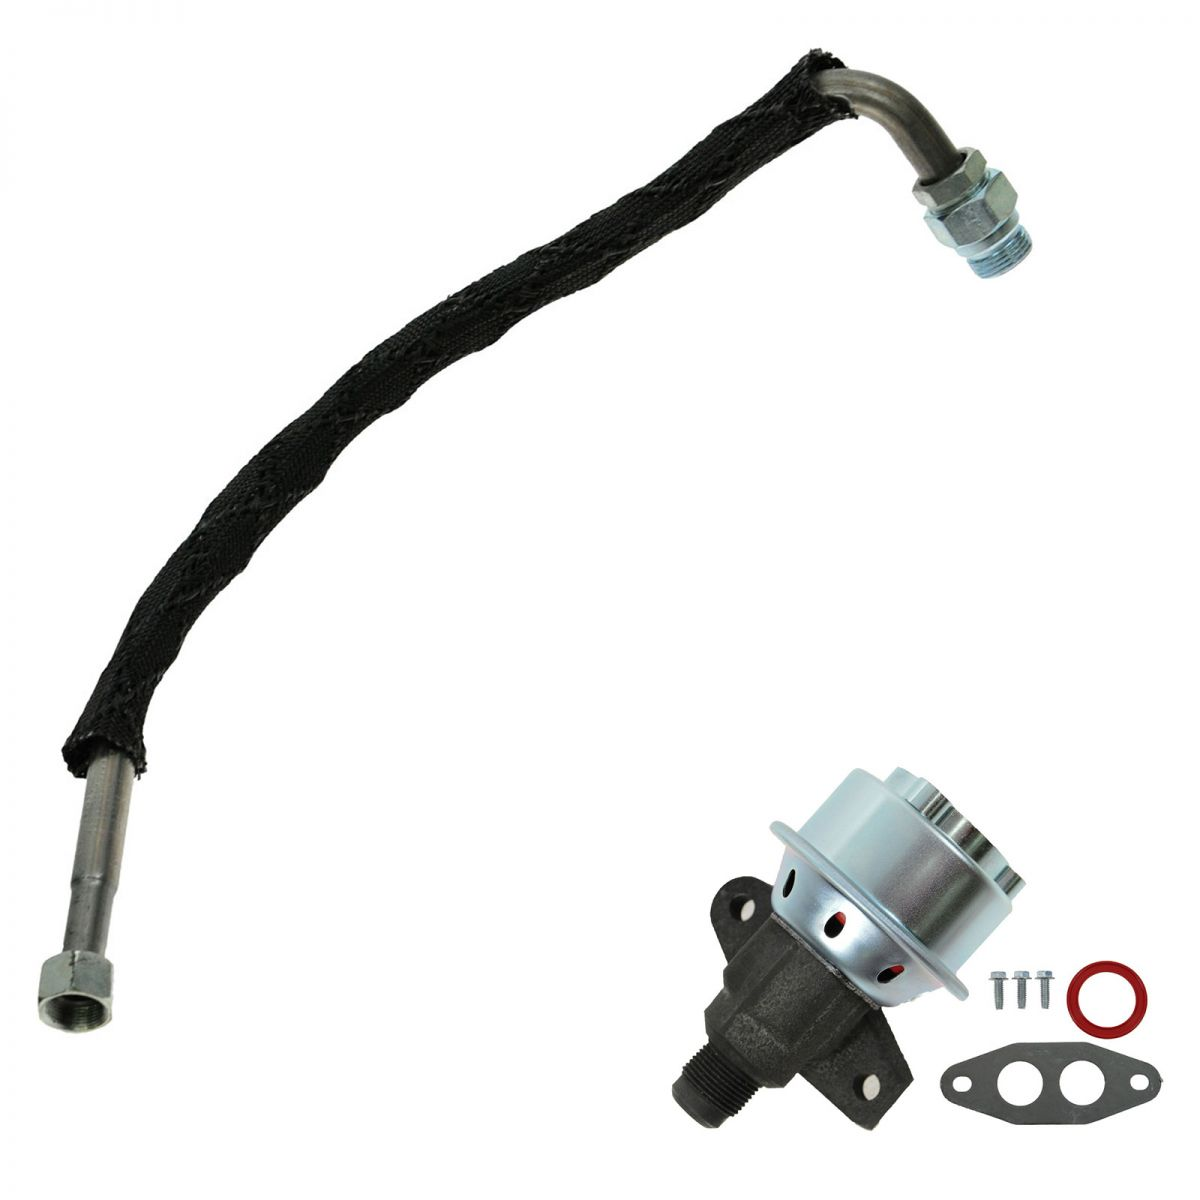 emissions egr tube and valve for 90 94 ford truck van econoline 4 9l f150 e150 ebay. Black Bedroom Furniture Sets. Home Design Ideas